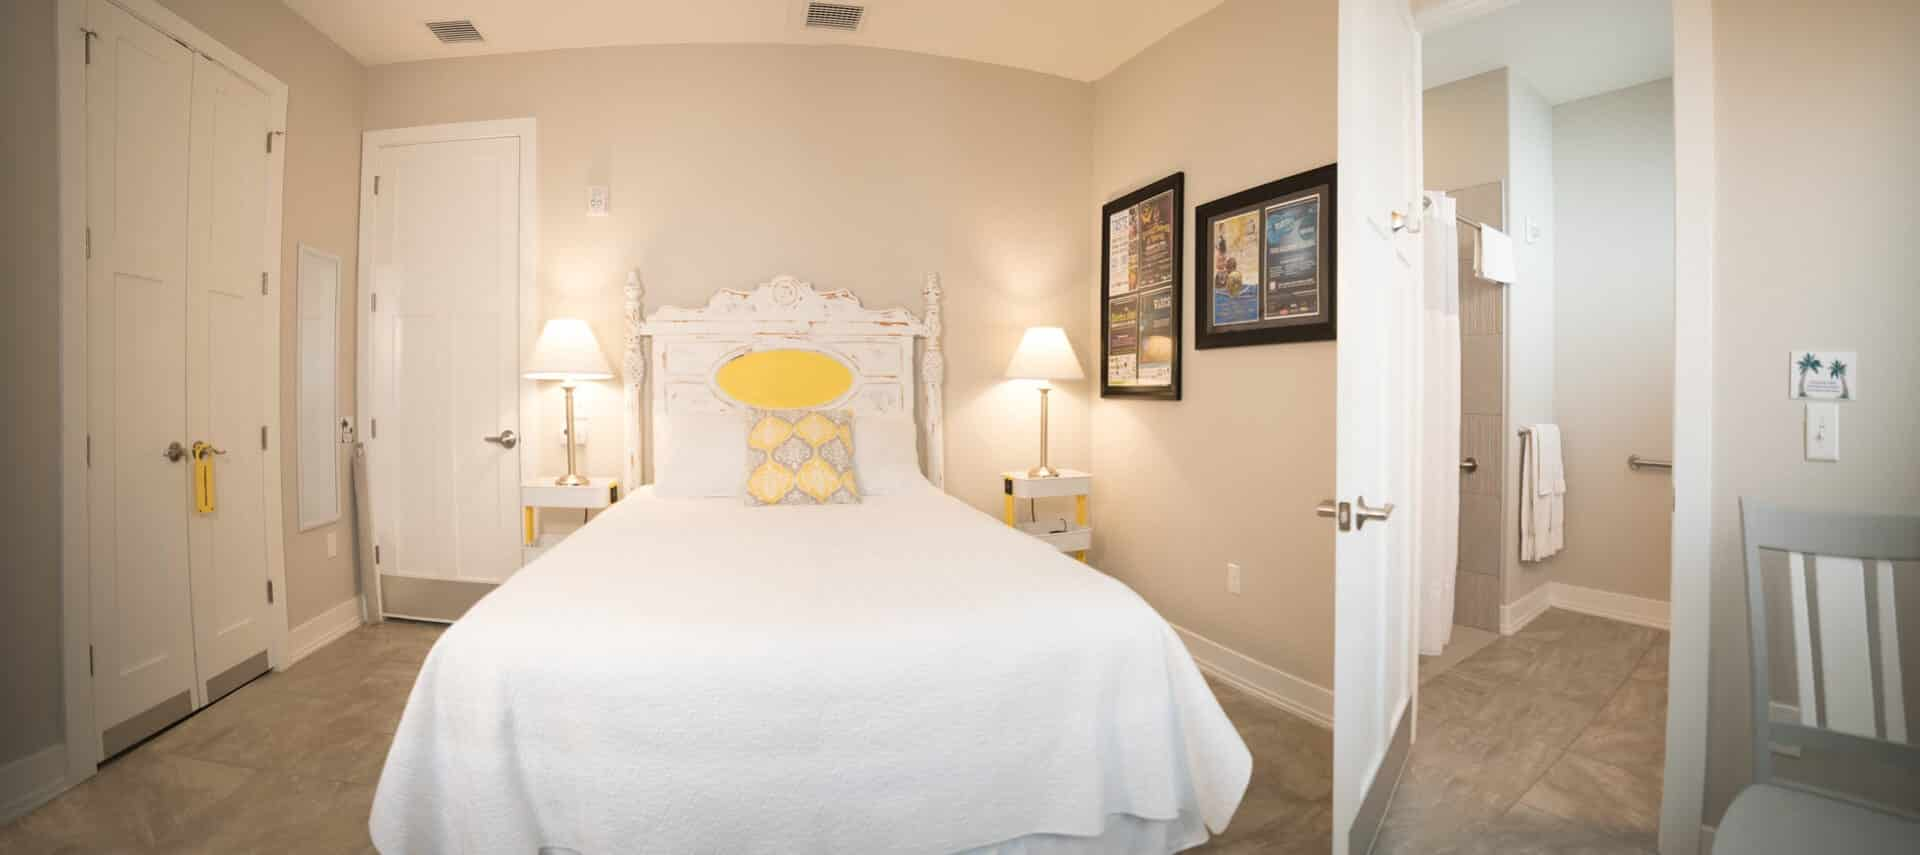 Large bed with shabby chic headboard made up in white bedding has nighstands on both sides with lamps.